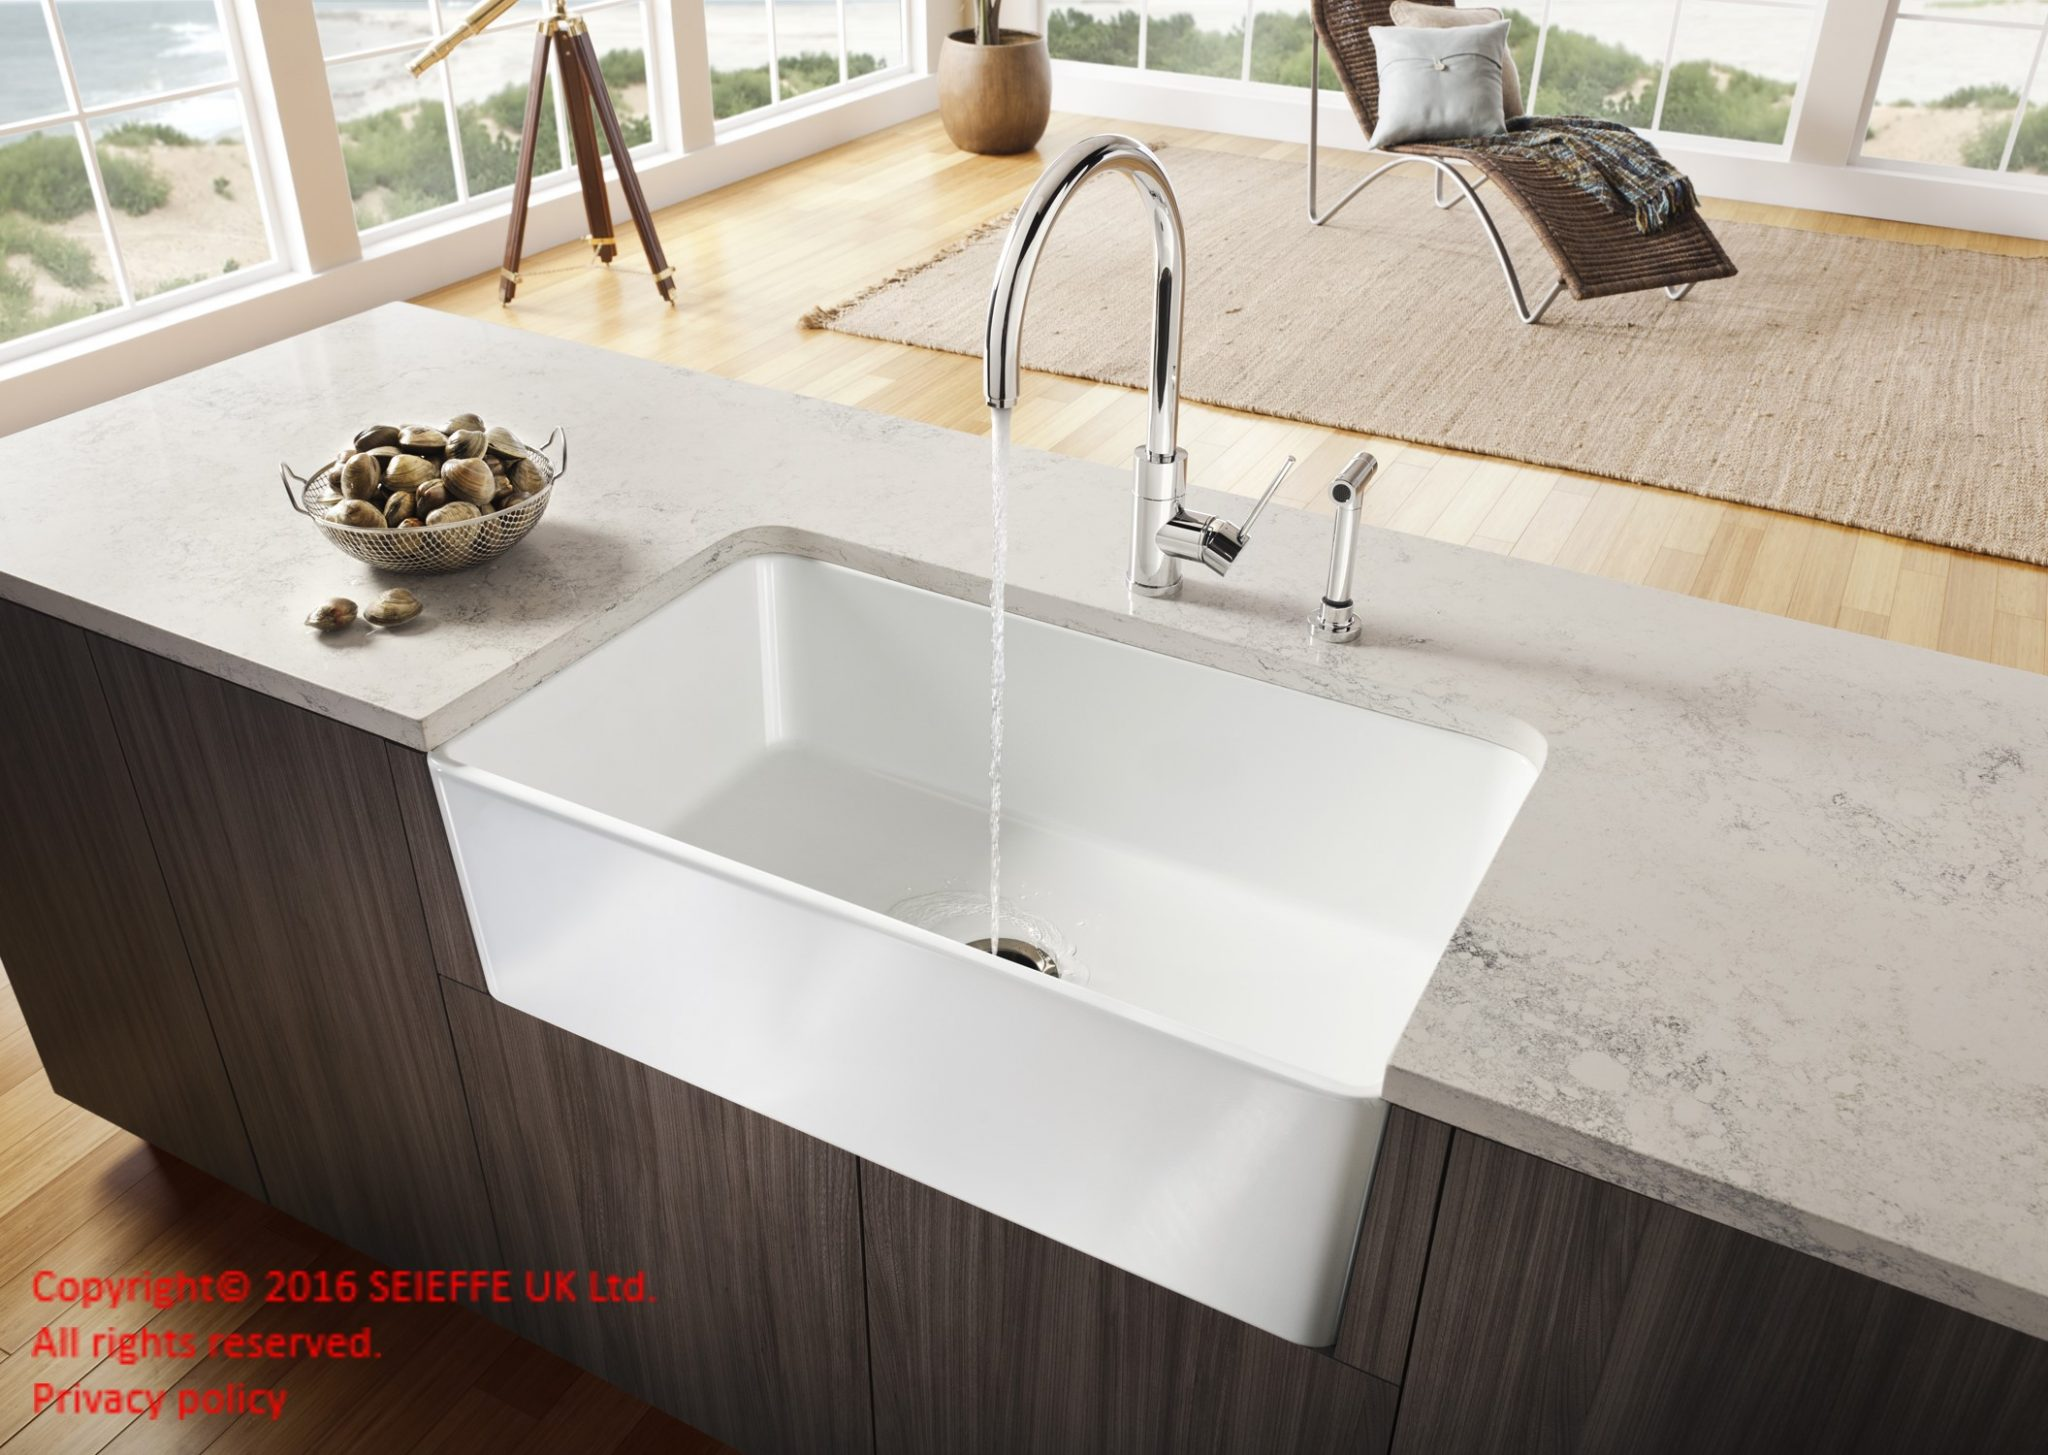 Okite kitchen top Bianco Carrara 1896